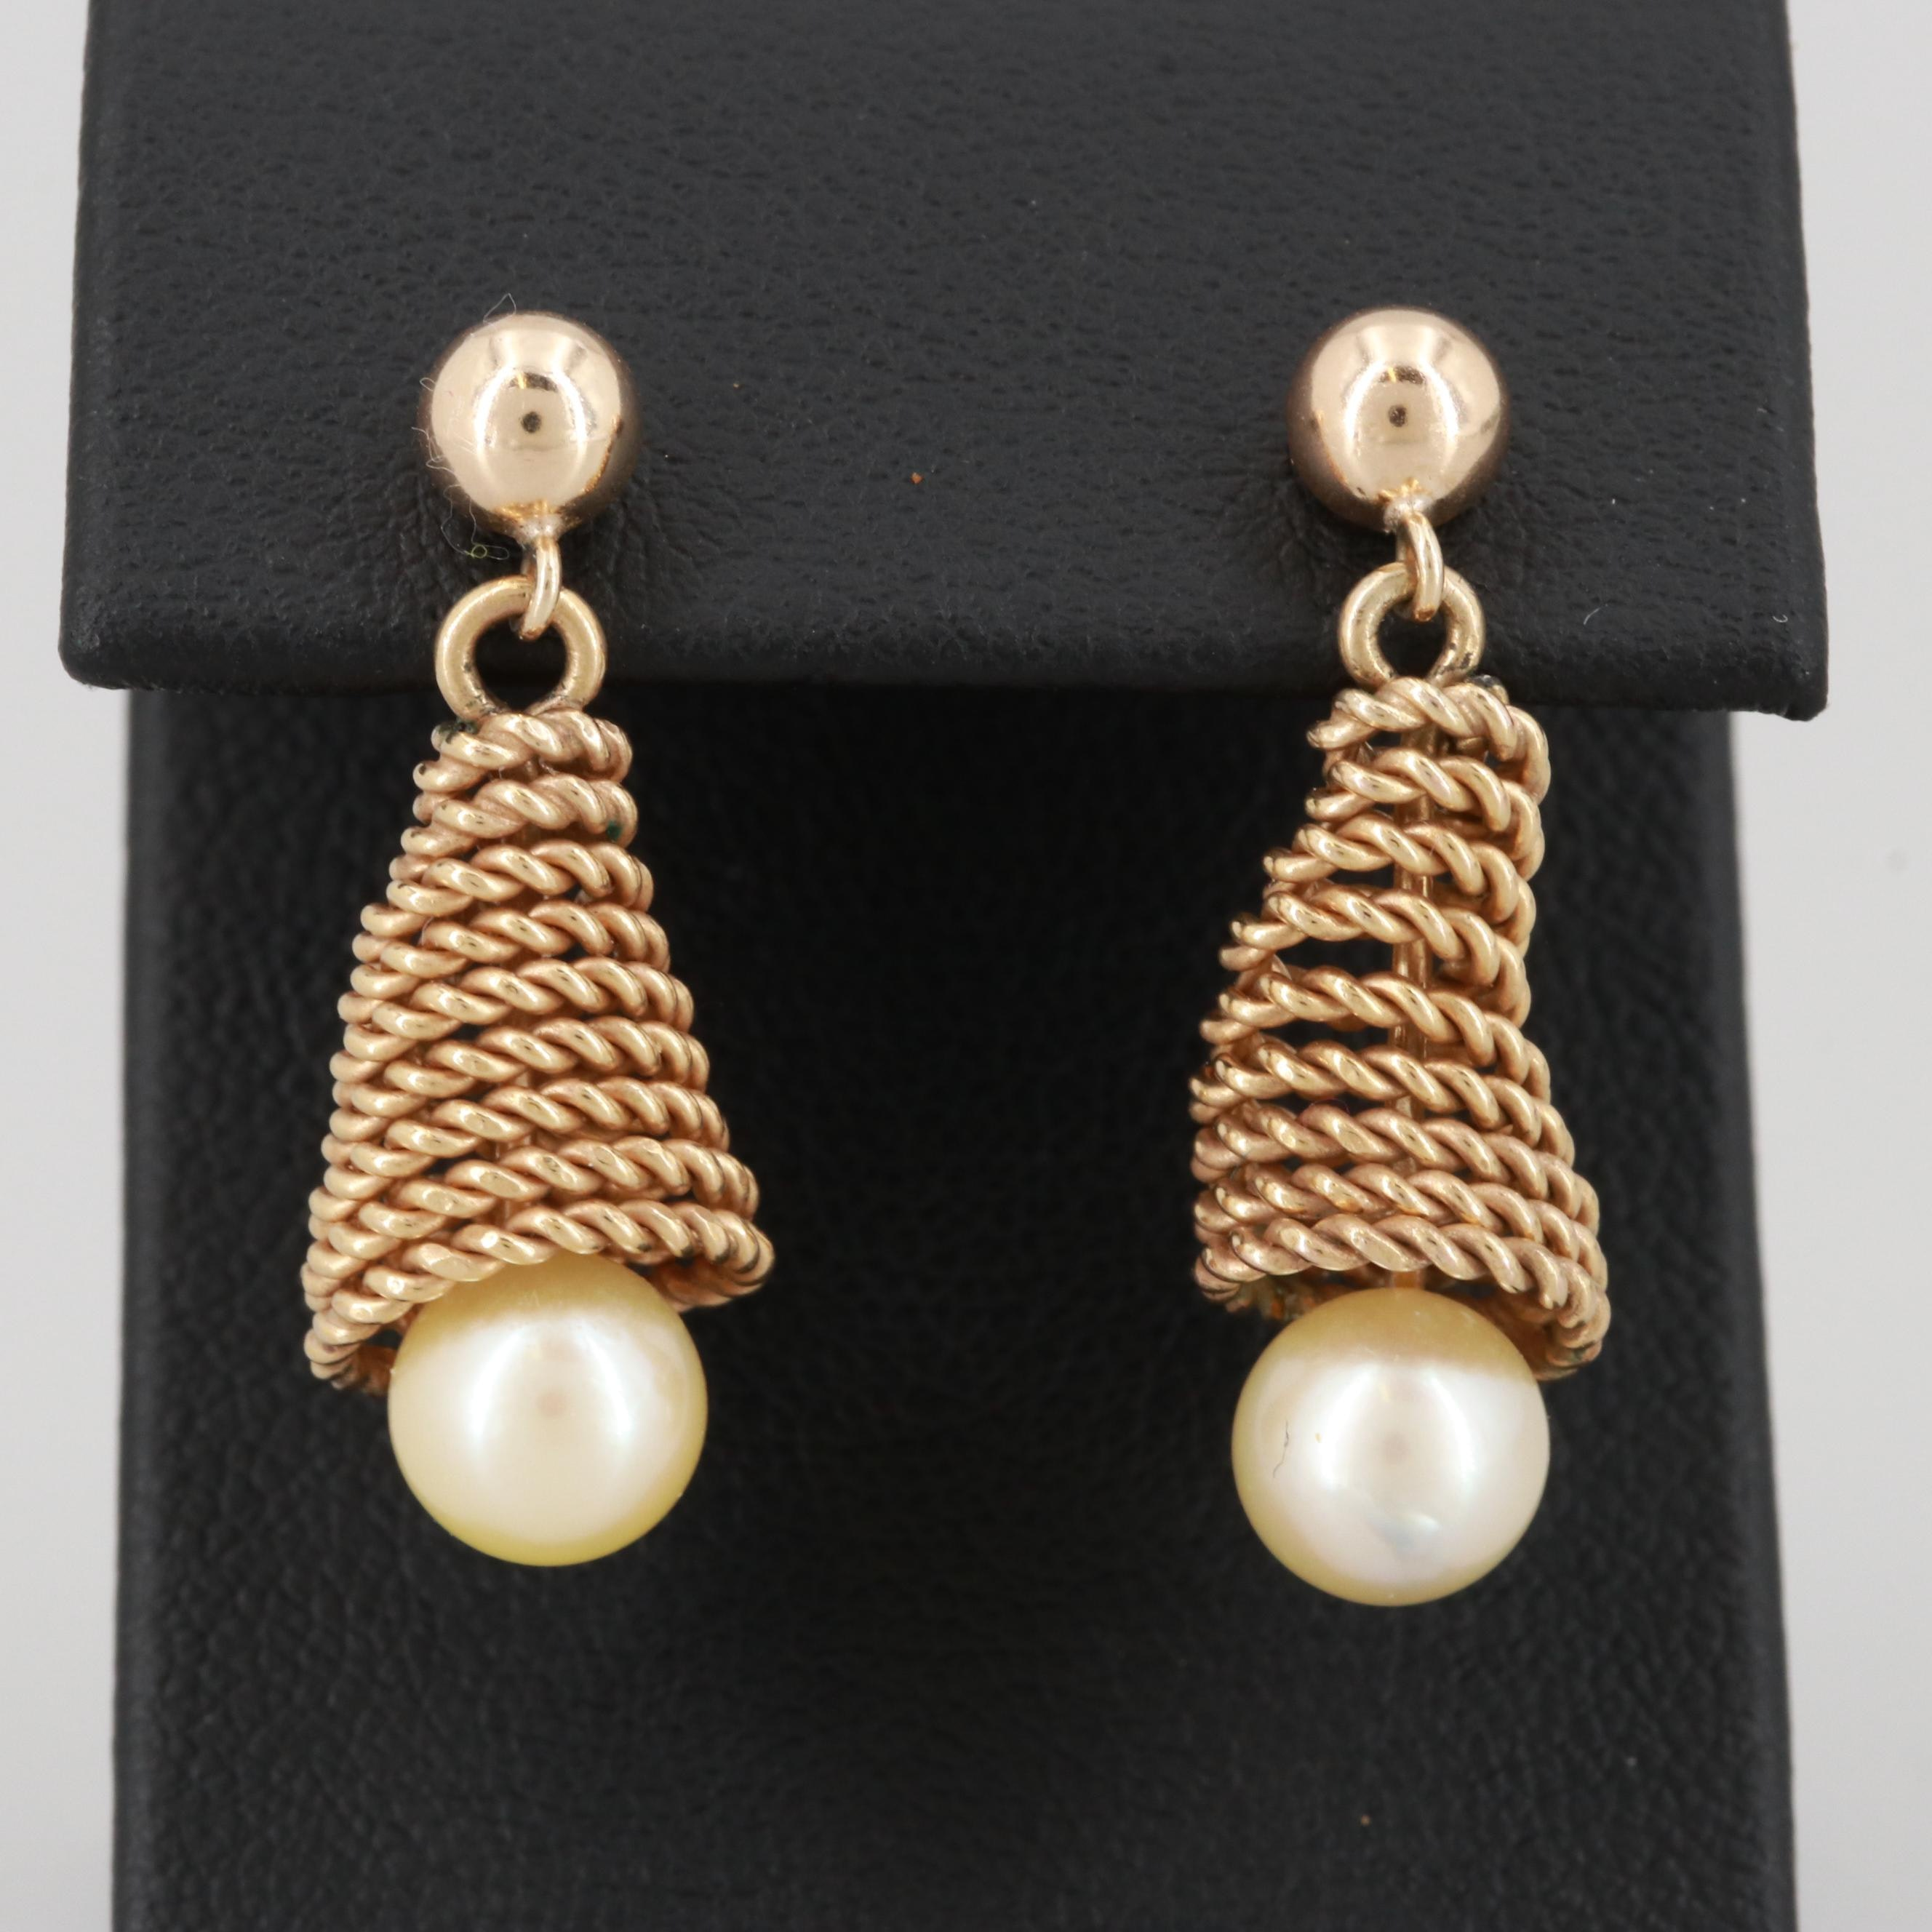 14K Yellow Gold and Gold Tone Cultured Pearl Dangle Earrings